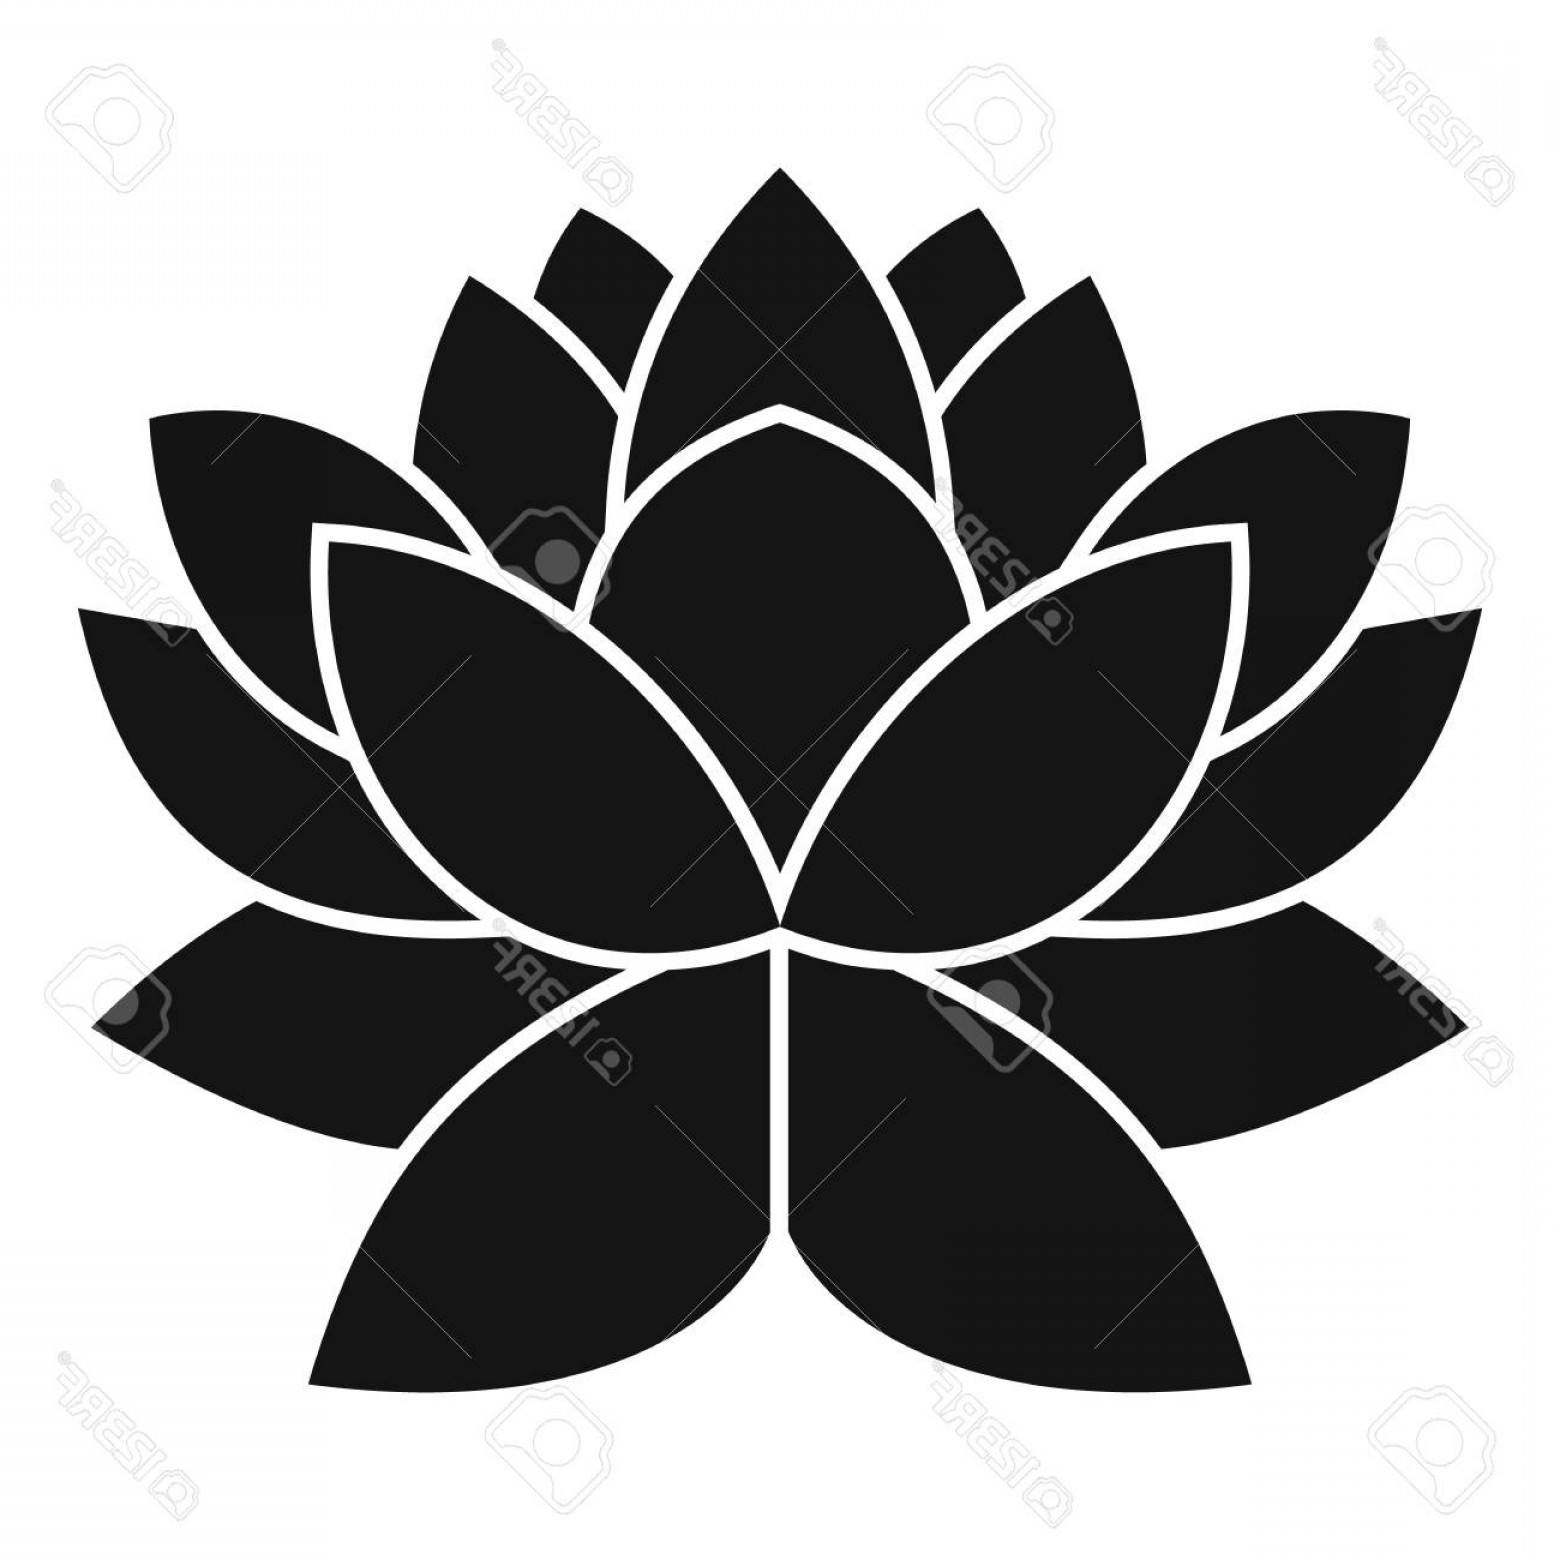 Icon Of Flower Vectors: Photostock Vector Lotus Flower Icon Simple Illustration Of Lotus Flower Vector Icon For Web Design